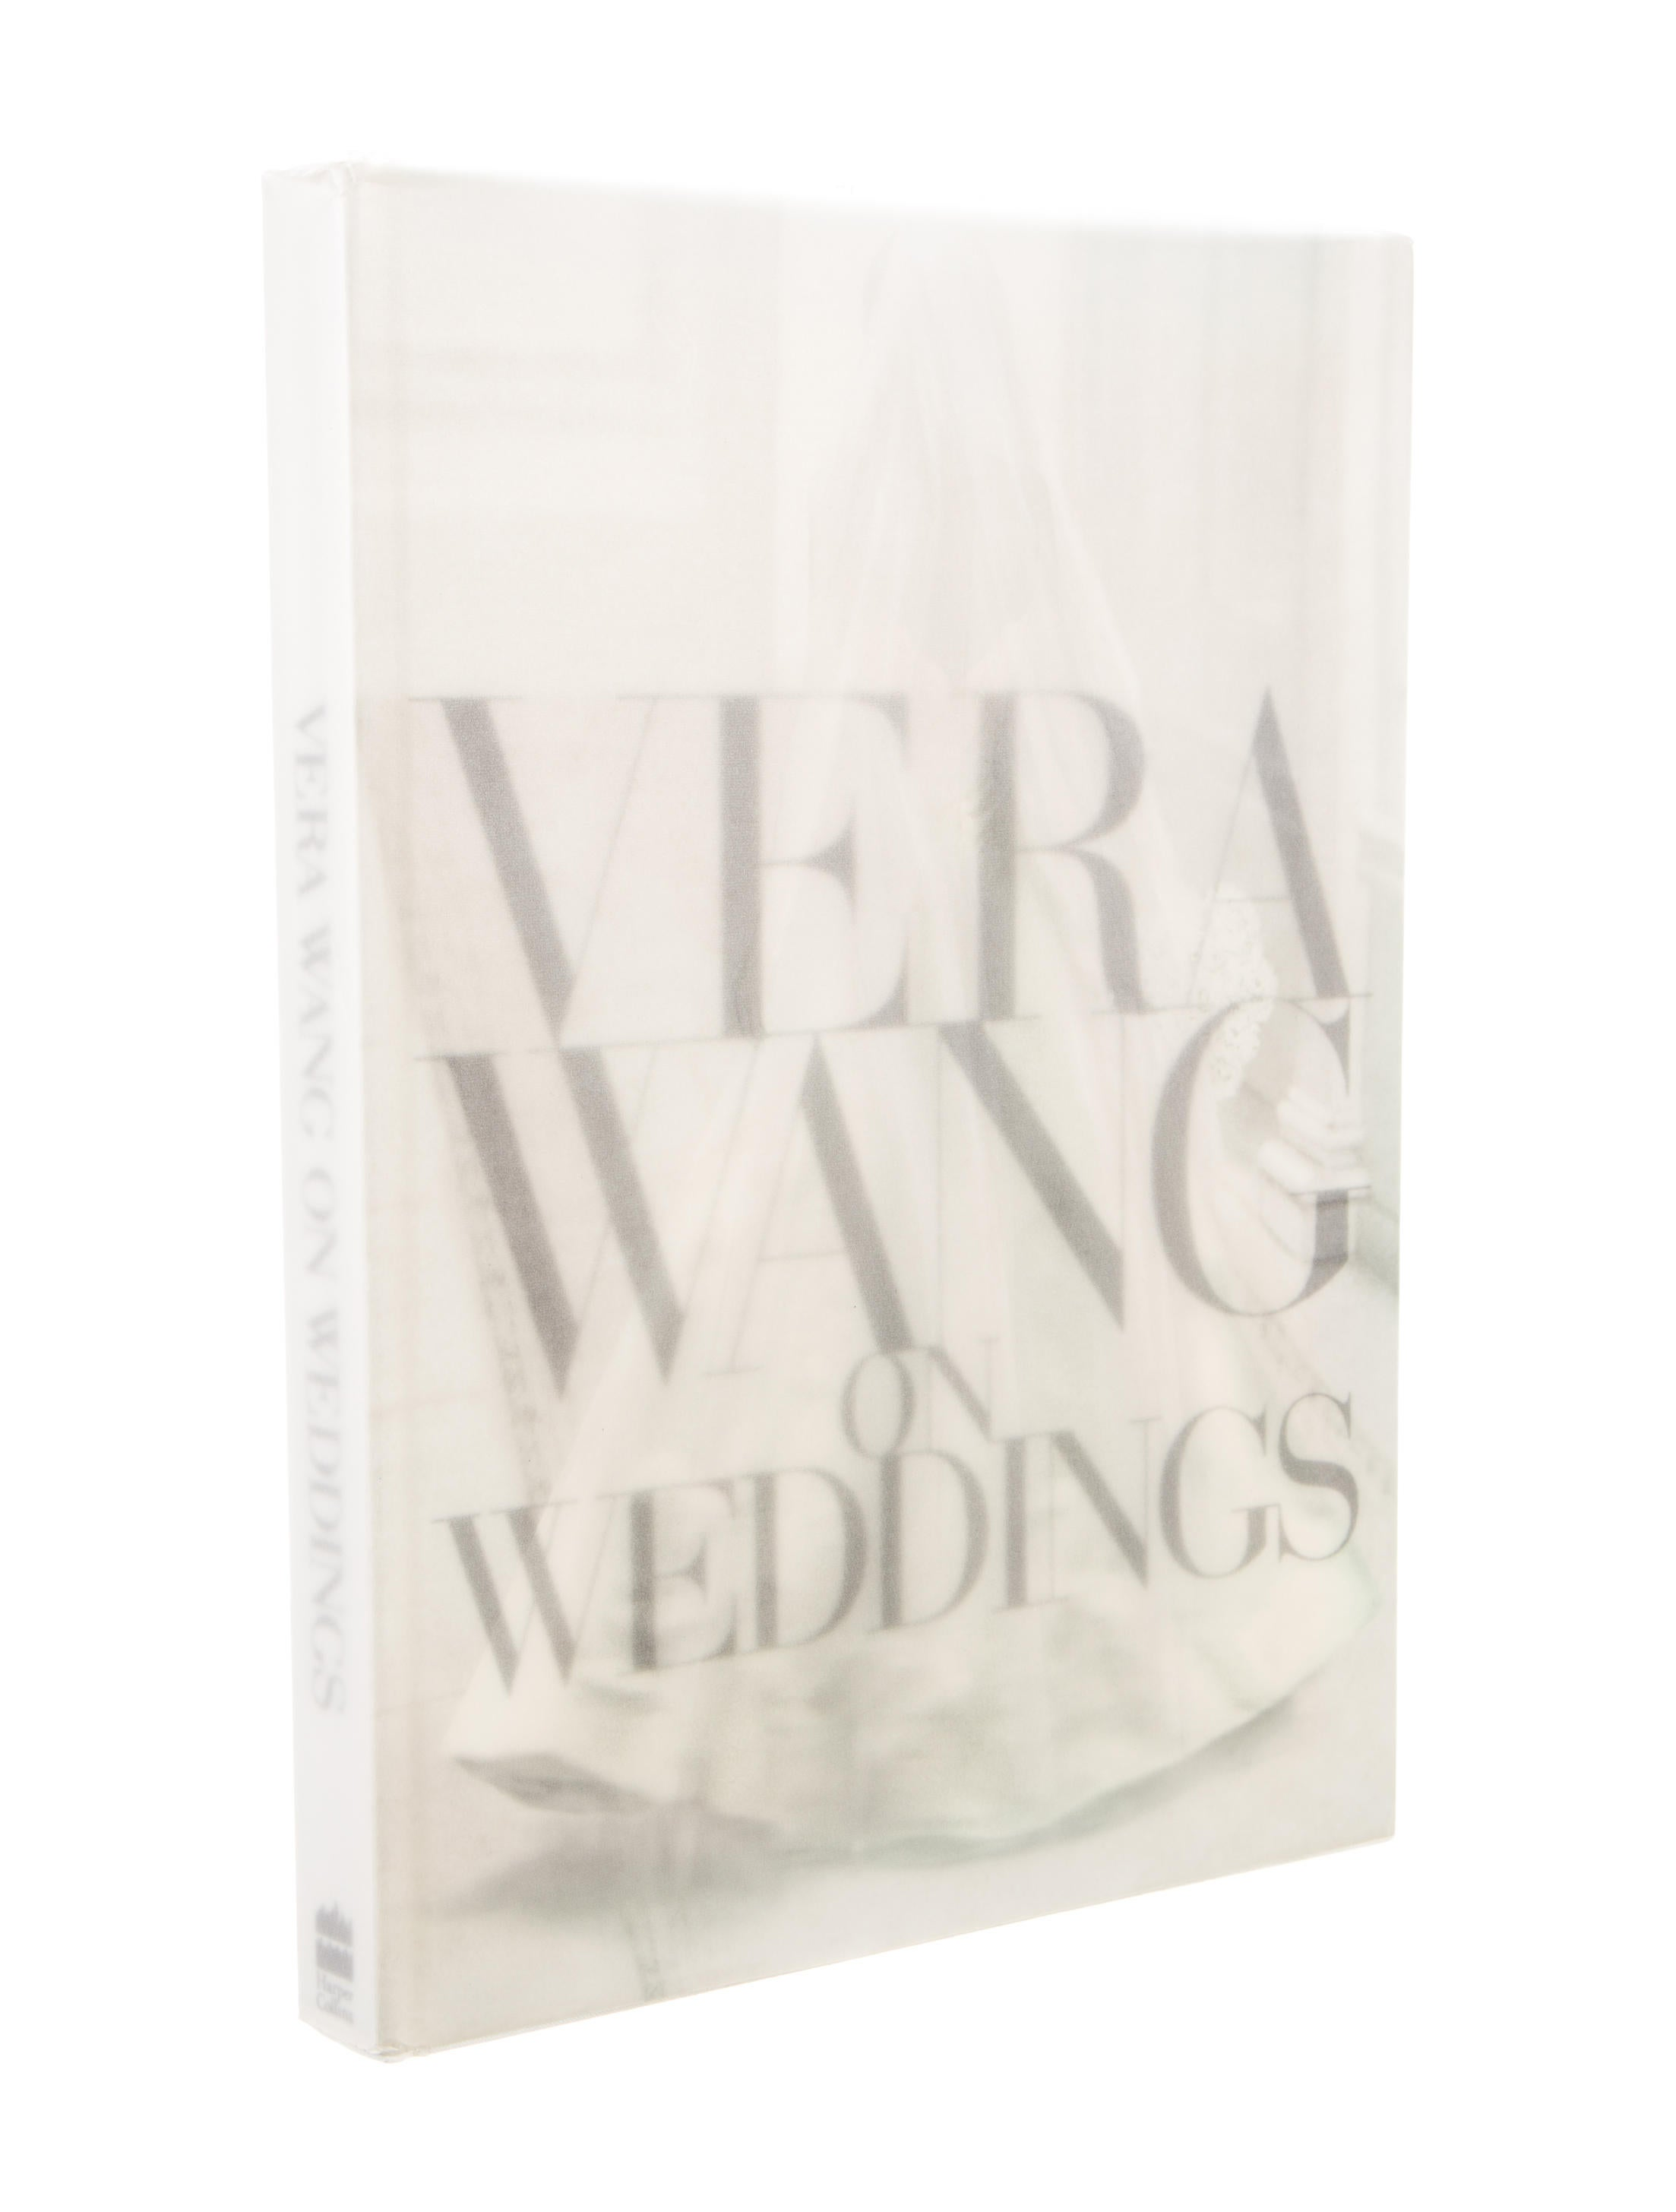 Vera Wang On Weddings Signed Copy - Decor And Accessories ...